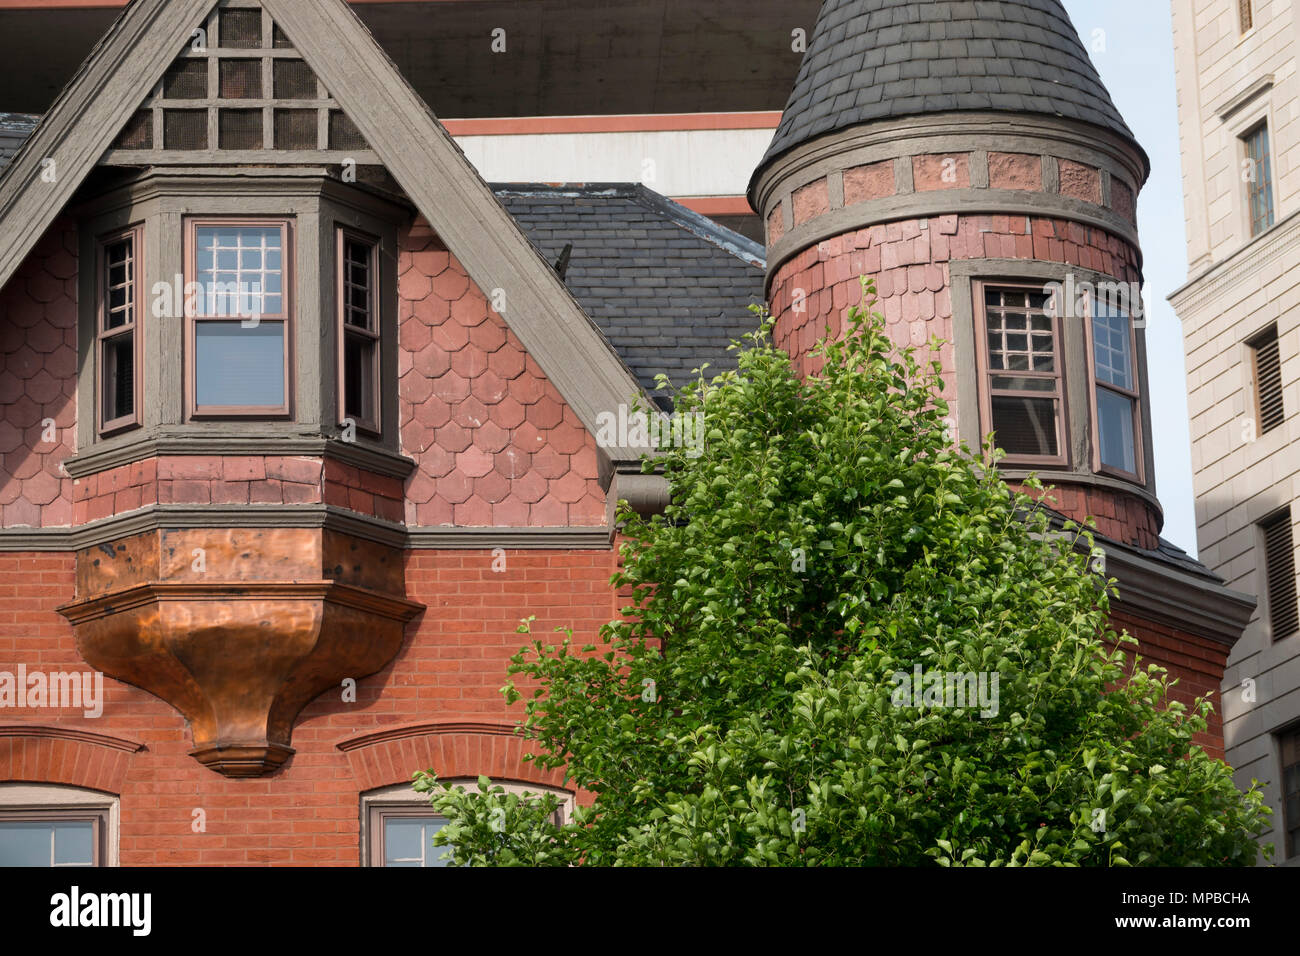 USA Pennsylvania PA Harrisburg bay windows on old home from around the turn of the 20th century - Stock Image